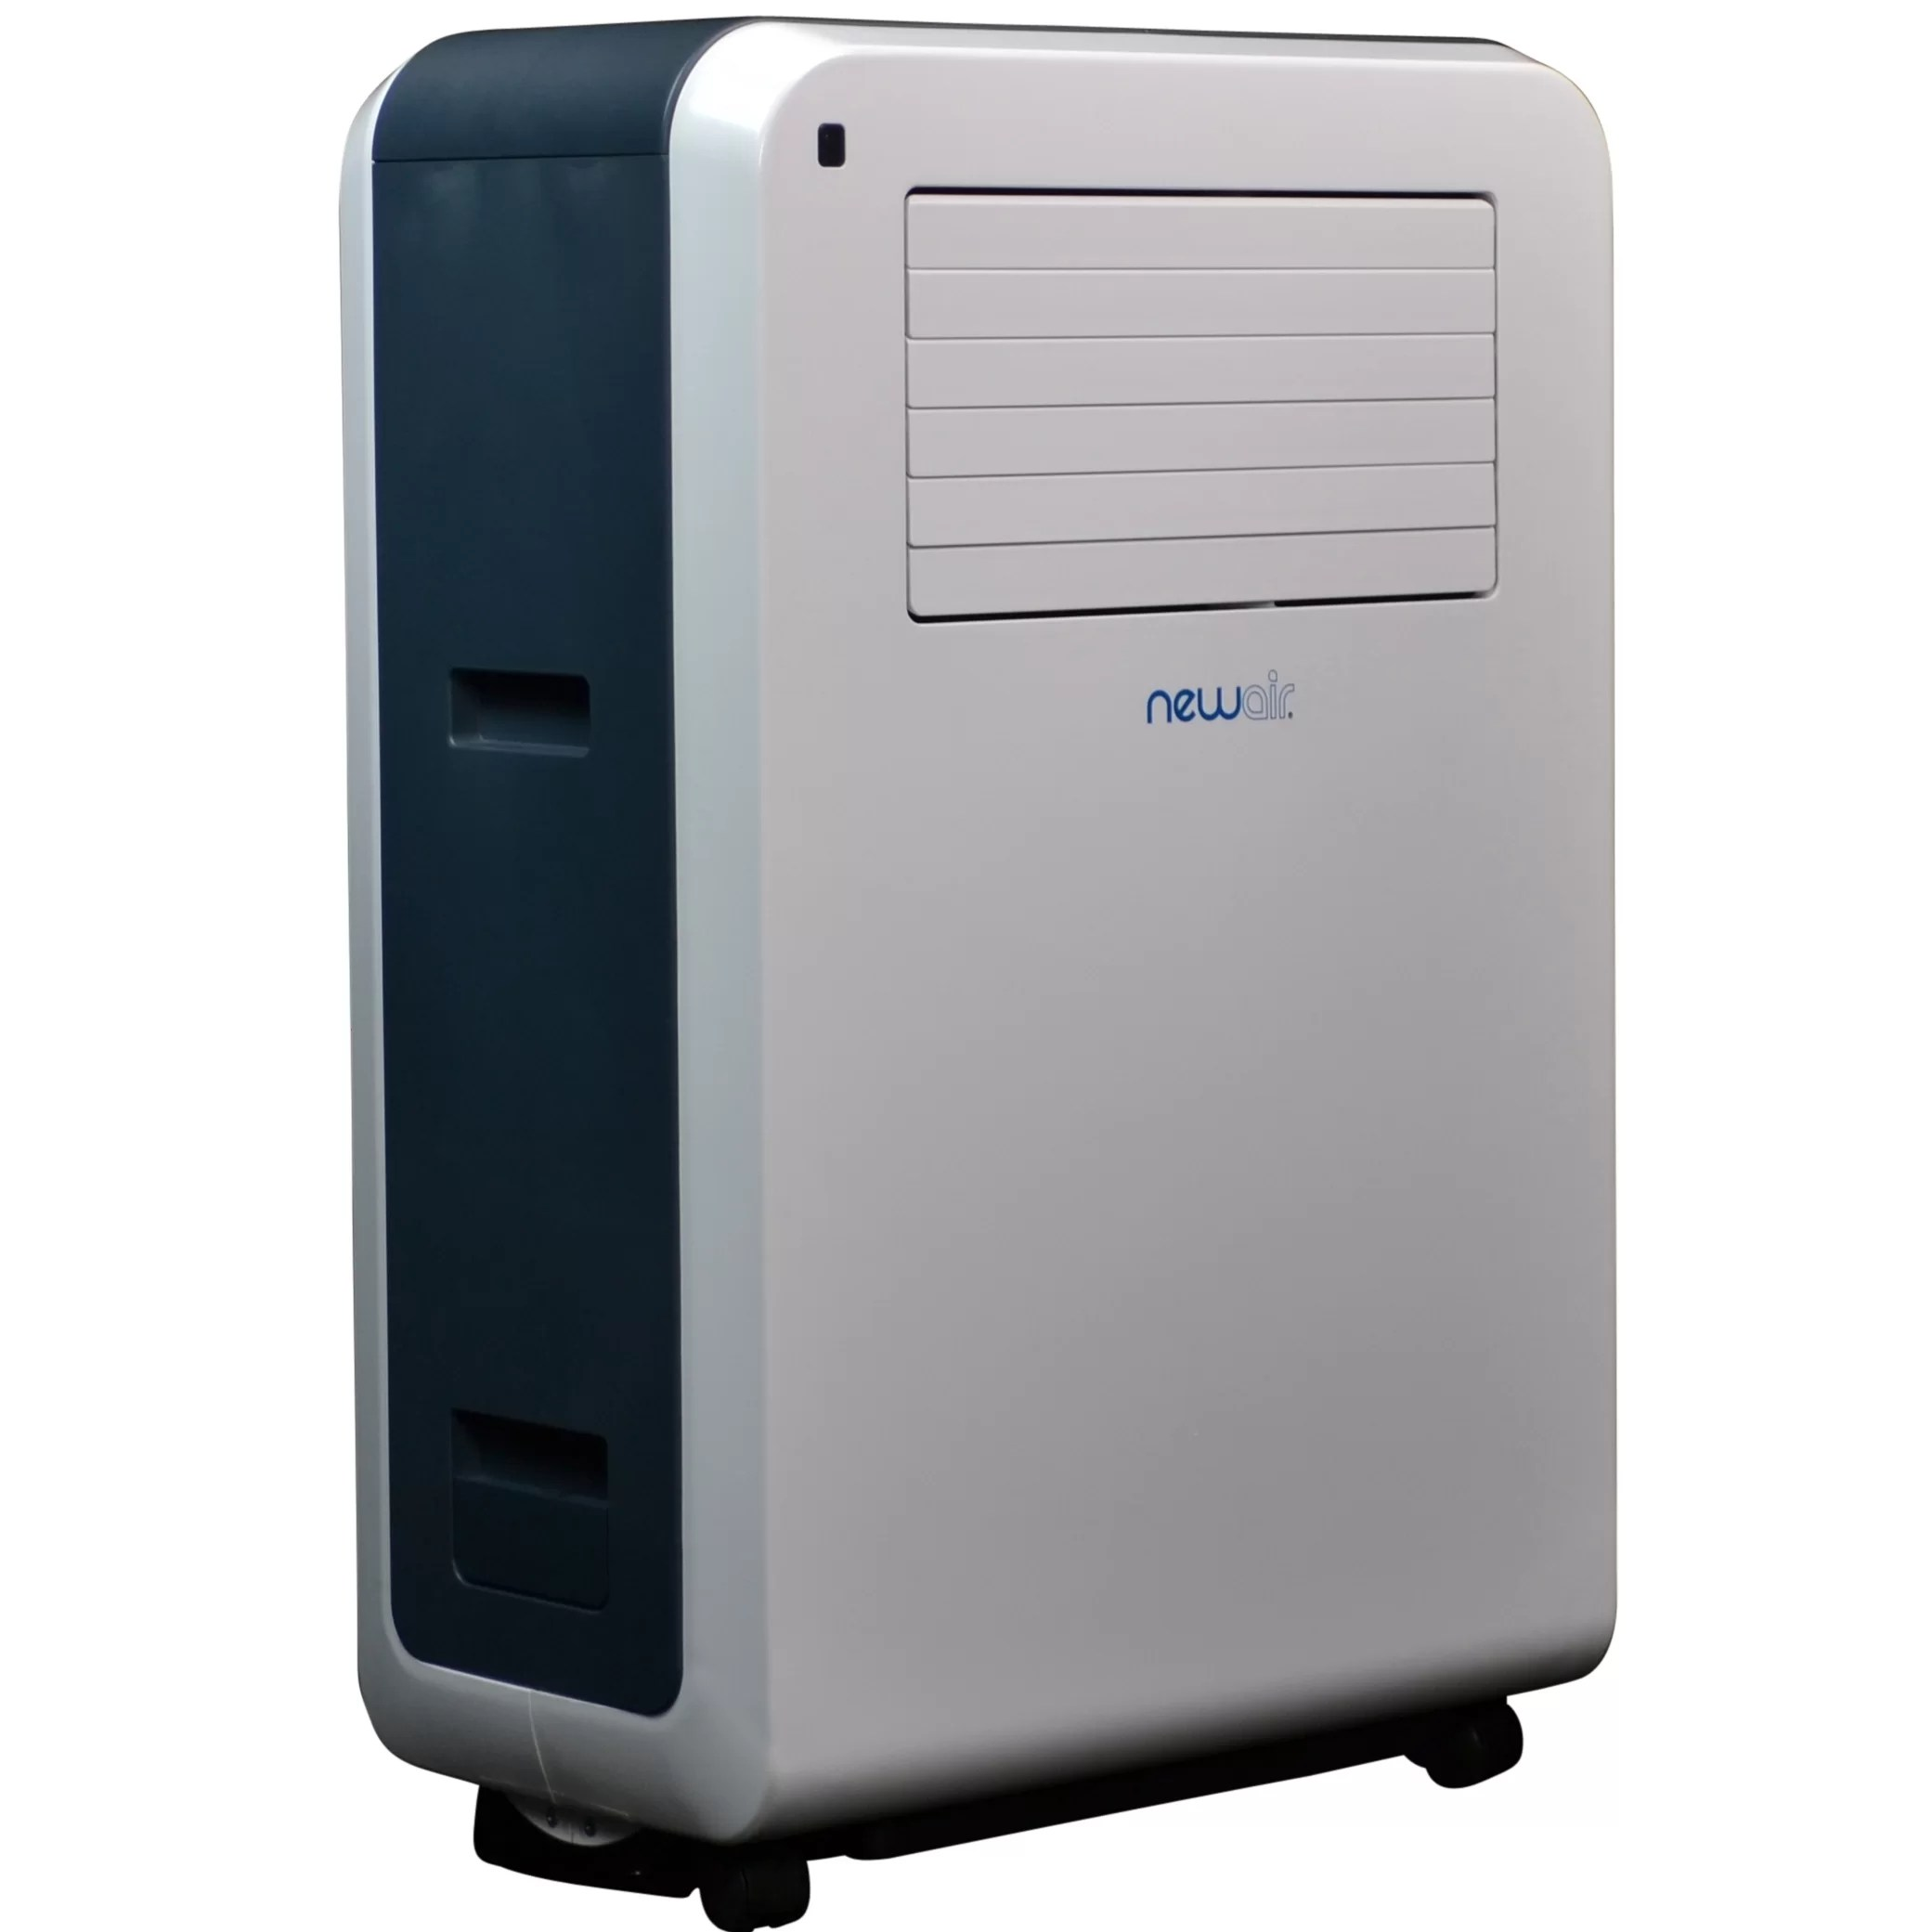 Portable Air Conditioner 12000 Btu Newair 12 000 Btu Portable Air Conditioner With Remote